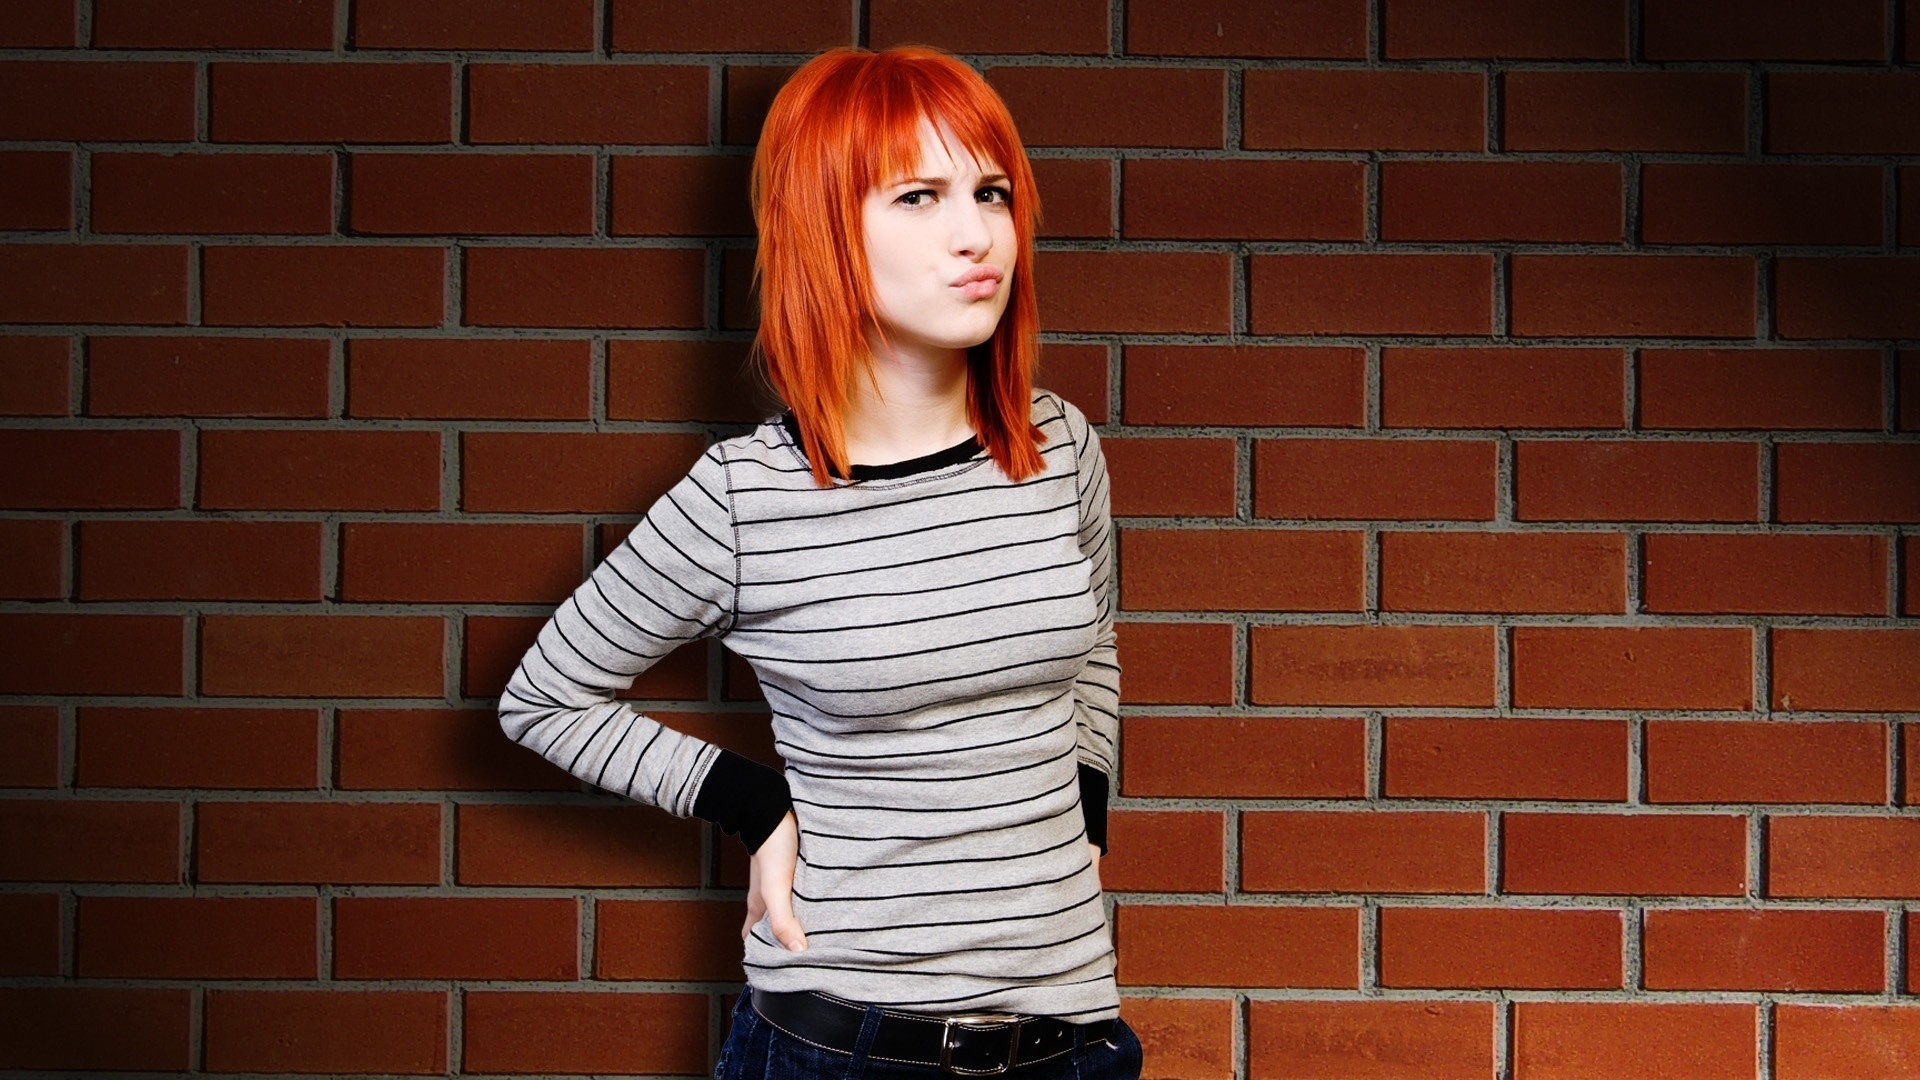 hayley williams woman redheads HD Wallpaper